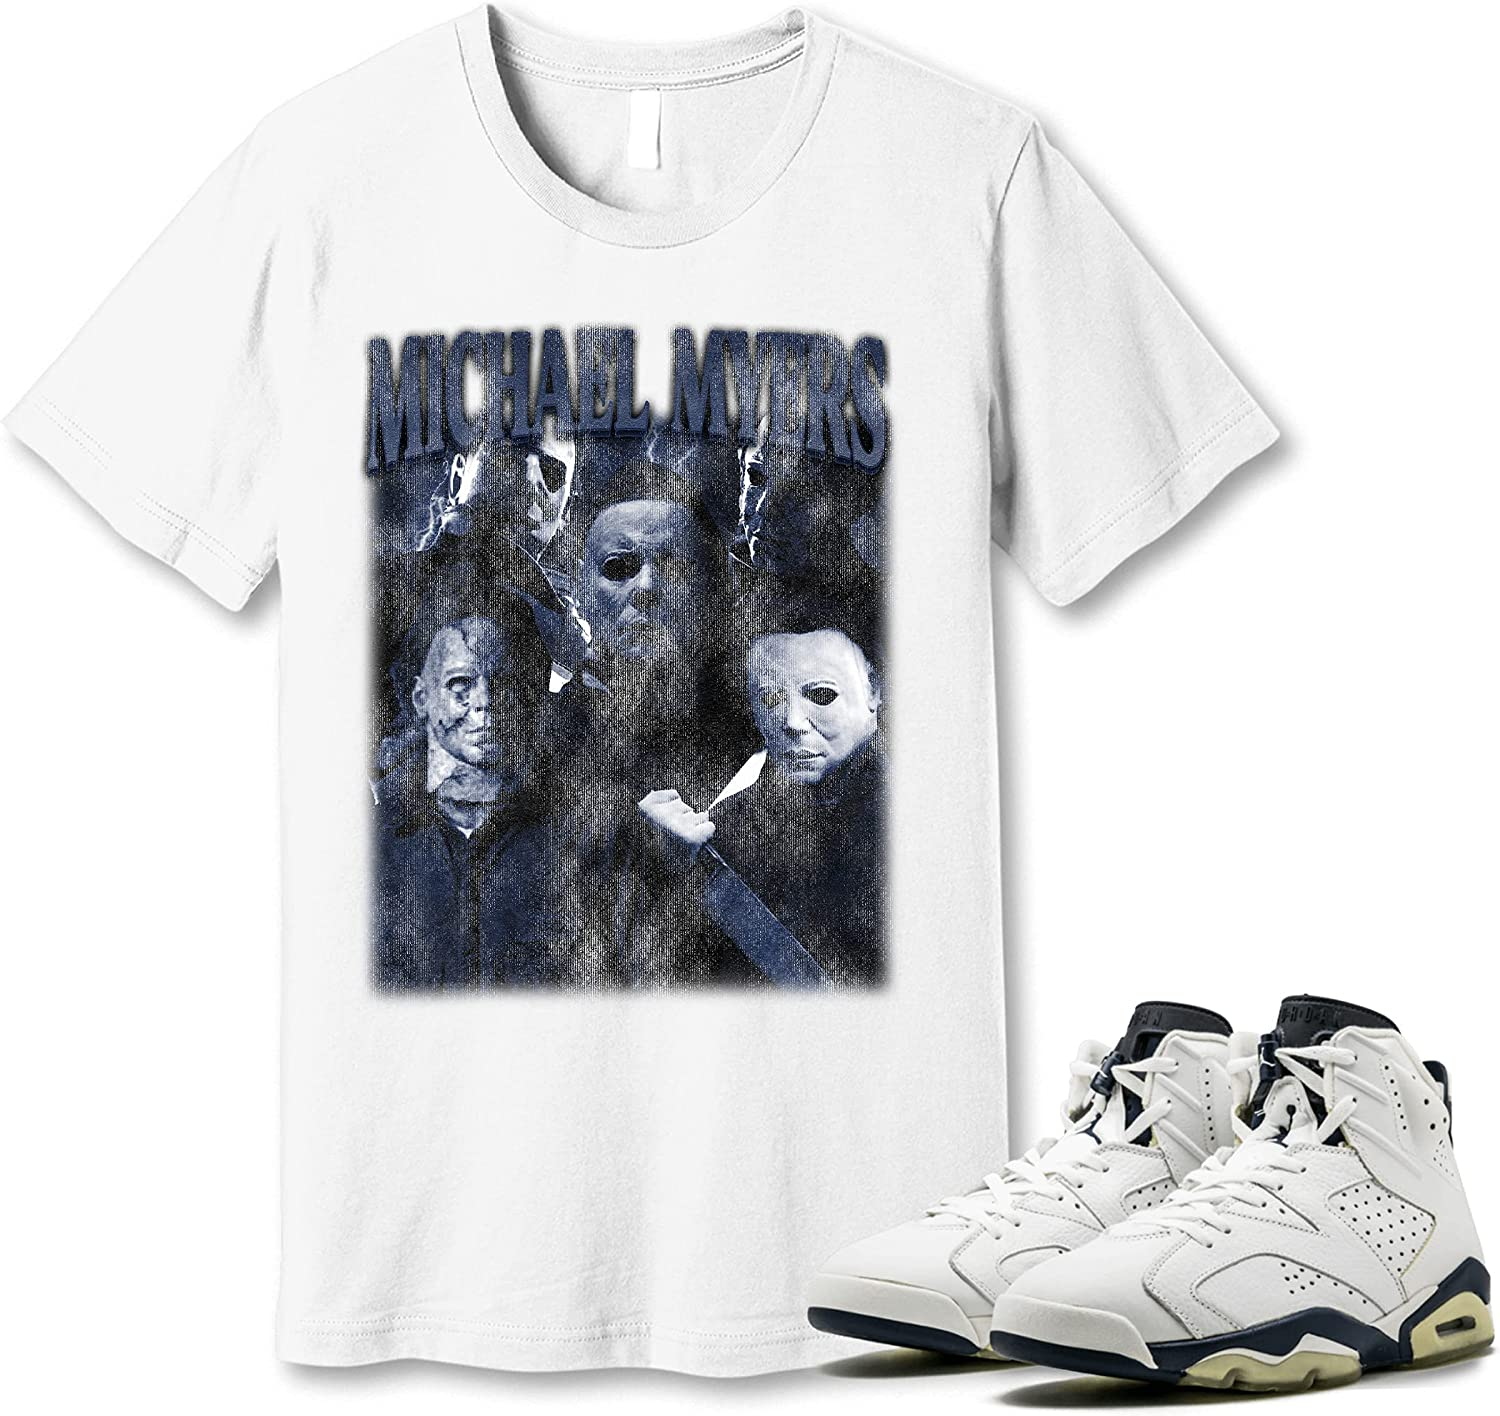 #Michael #Myer Shirt to Cheap mail order sales Match Jordan Navy Midnight 6 Special Campaign Gif Sneaker